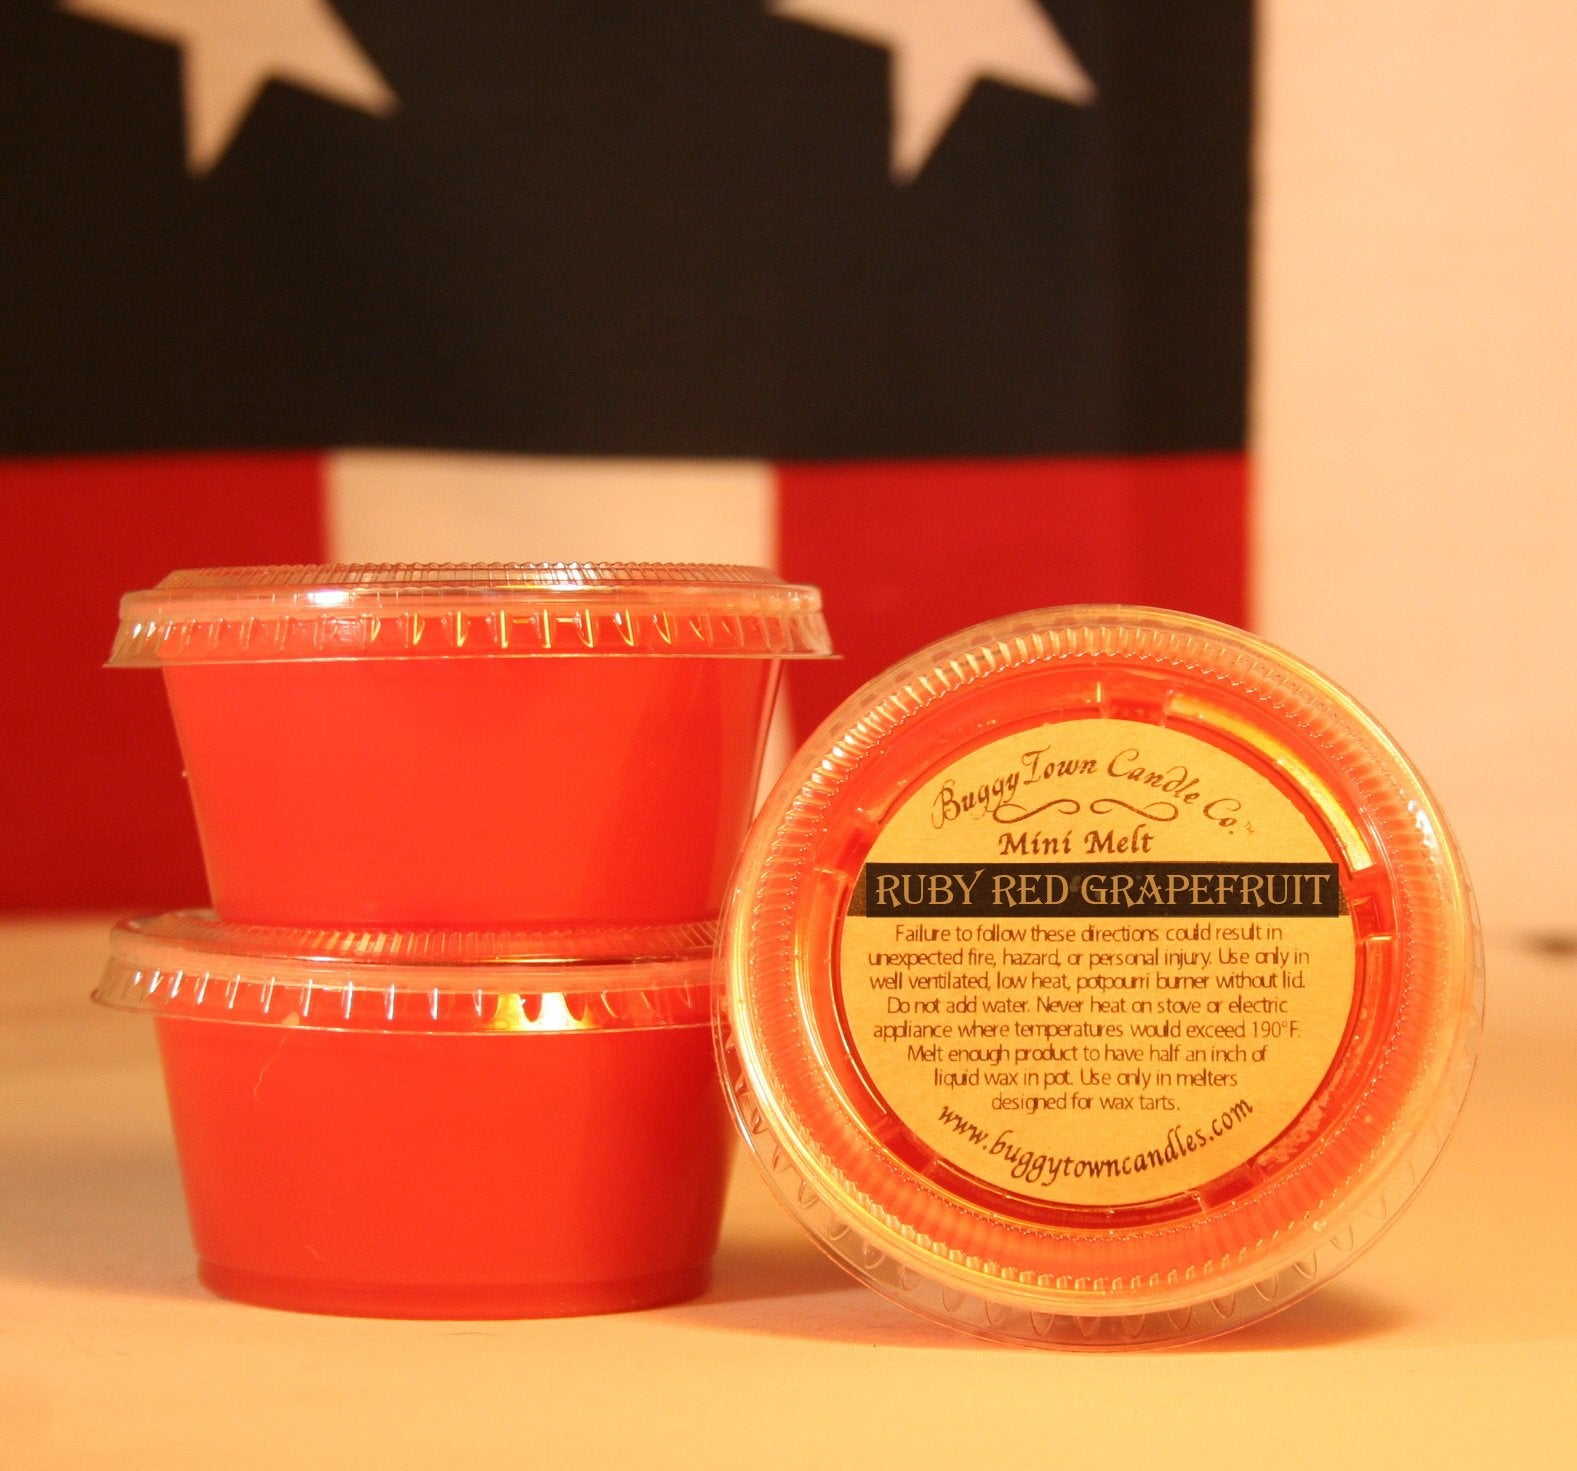 Ruby Red Grapefruit Candles